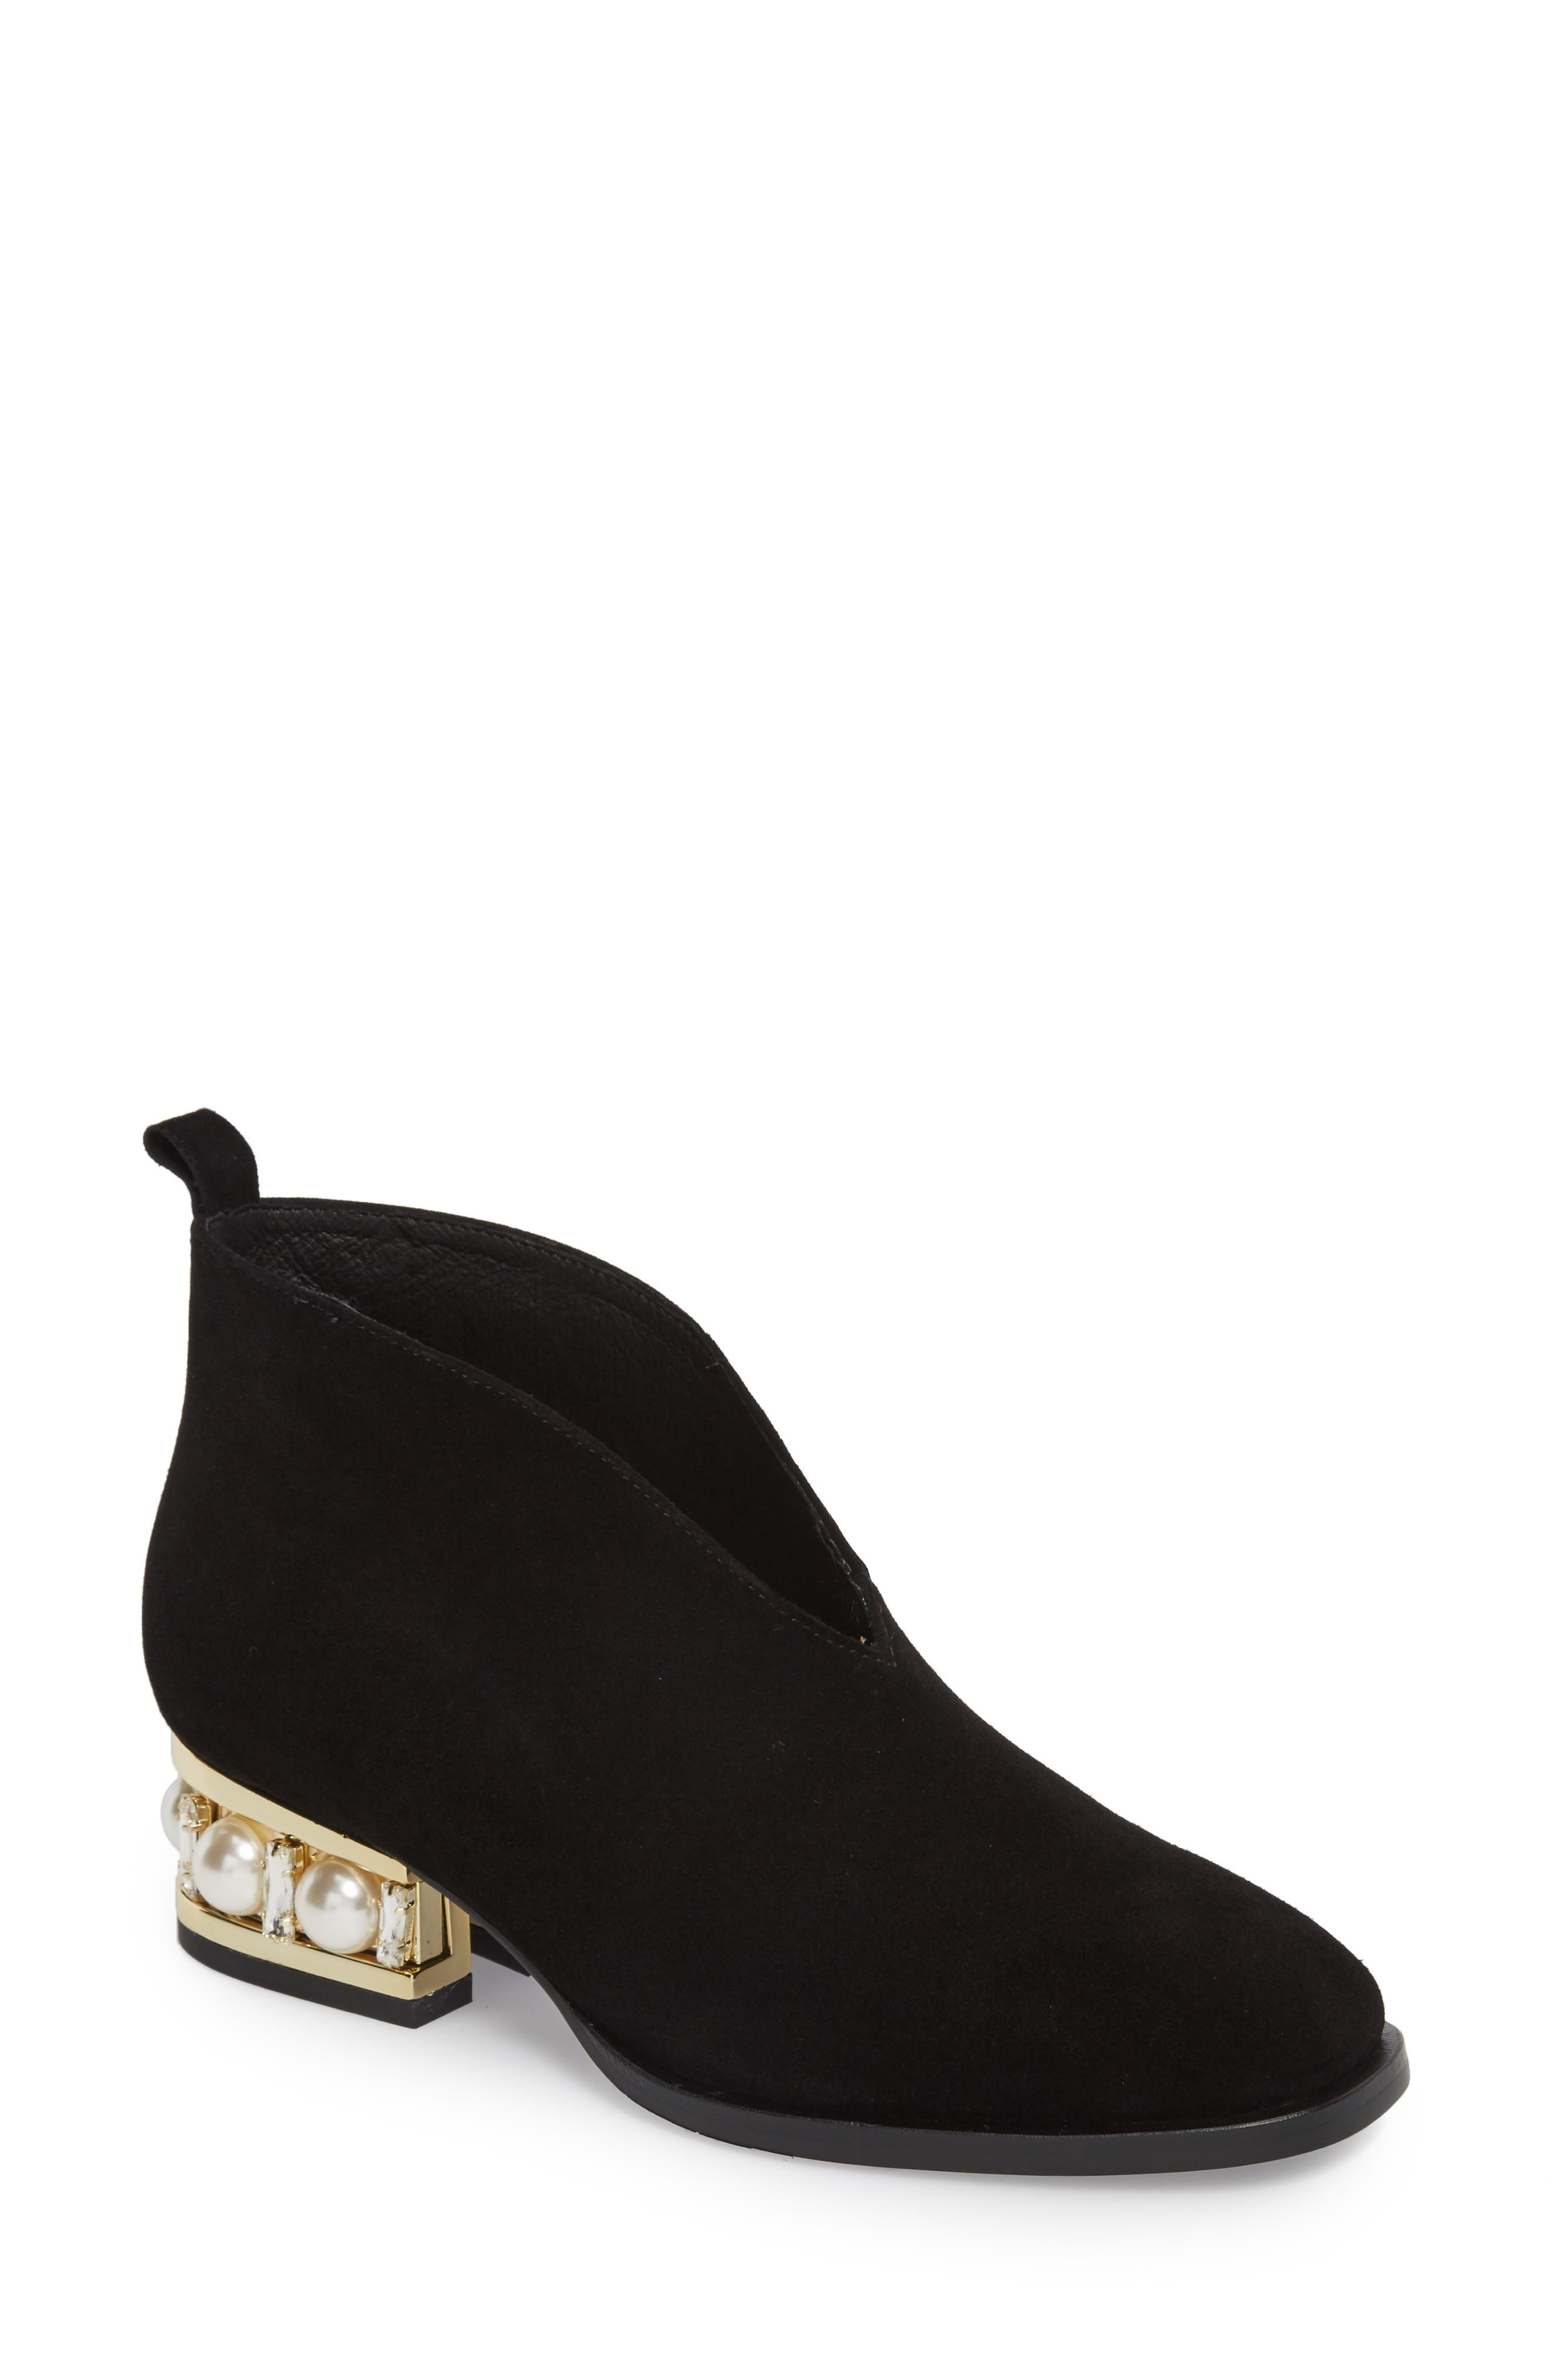 Jerman-VPJ Embellished Bootie,                         Main,                         color, BLACK/ GOLD SUEDE